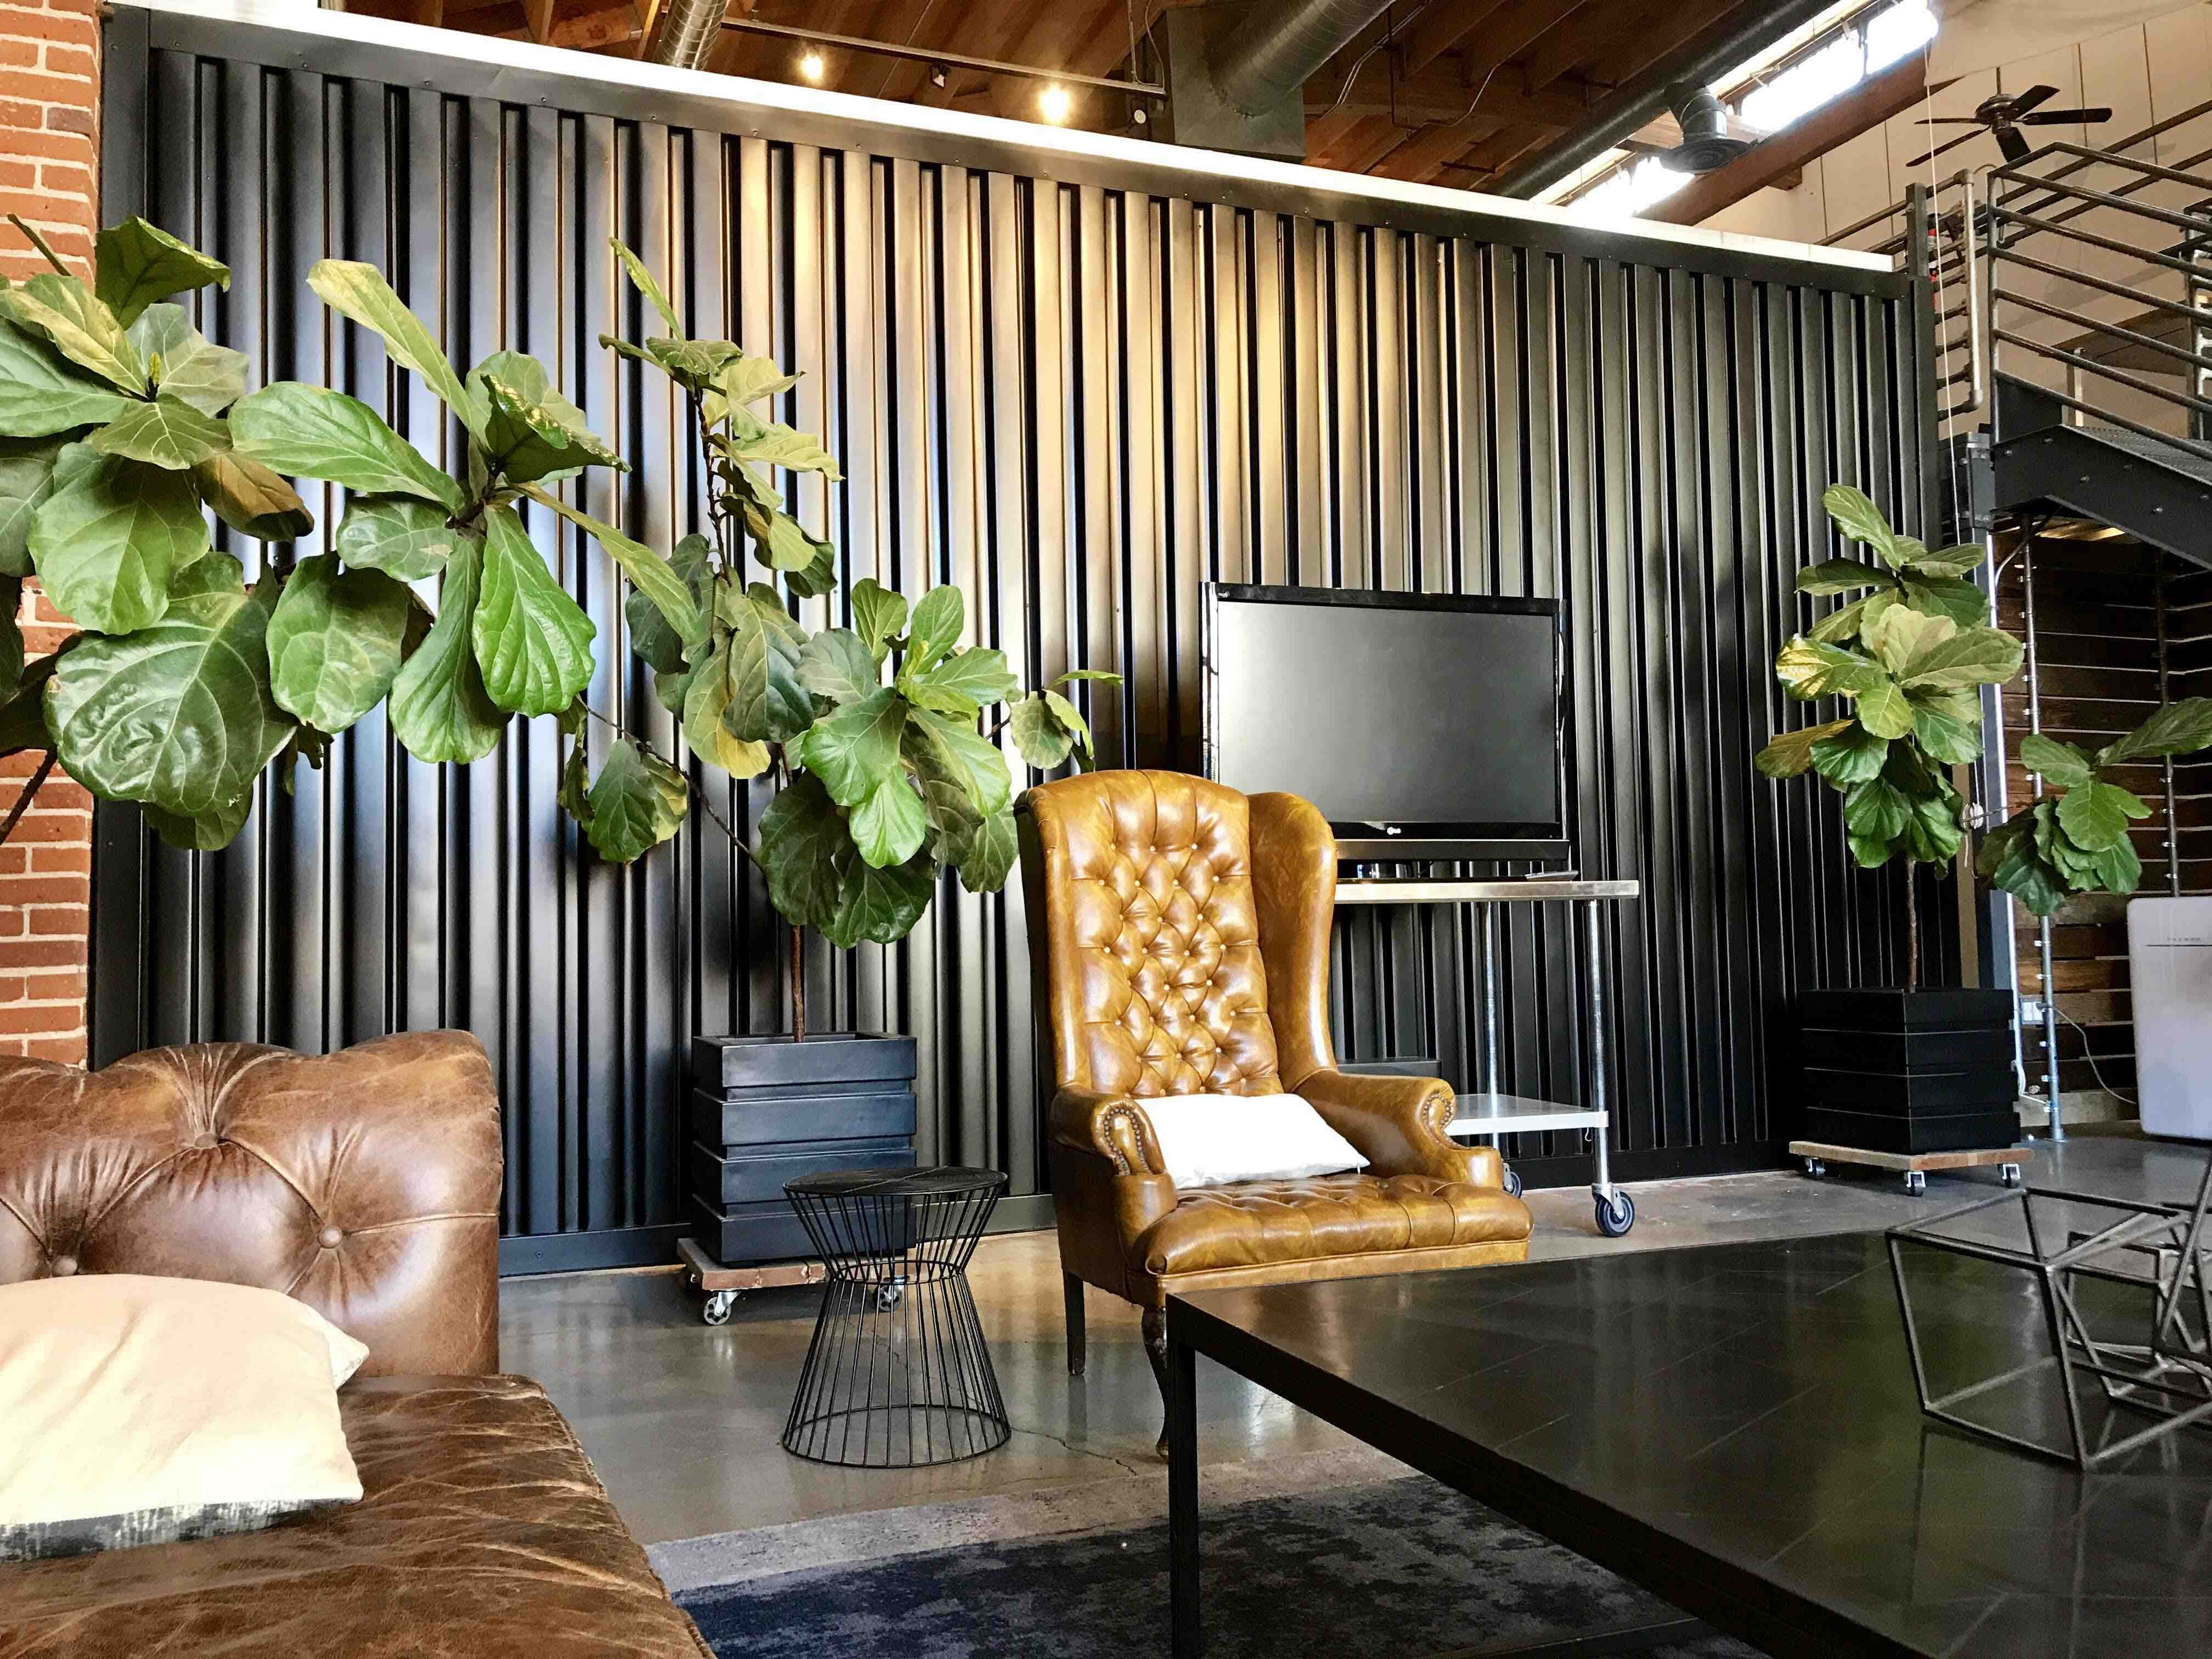 The waiting area of the Blink San Diego design studio has comfortable seating, fiddle leaf fig trees, and very high ceilings.